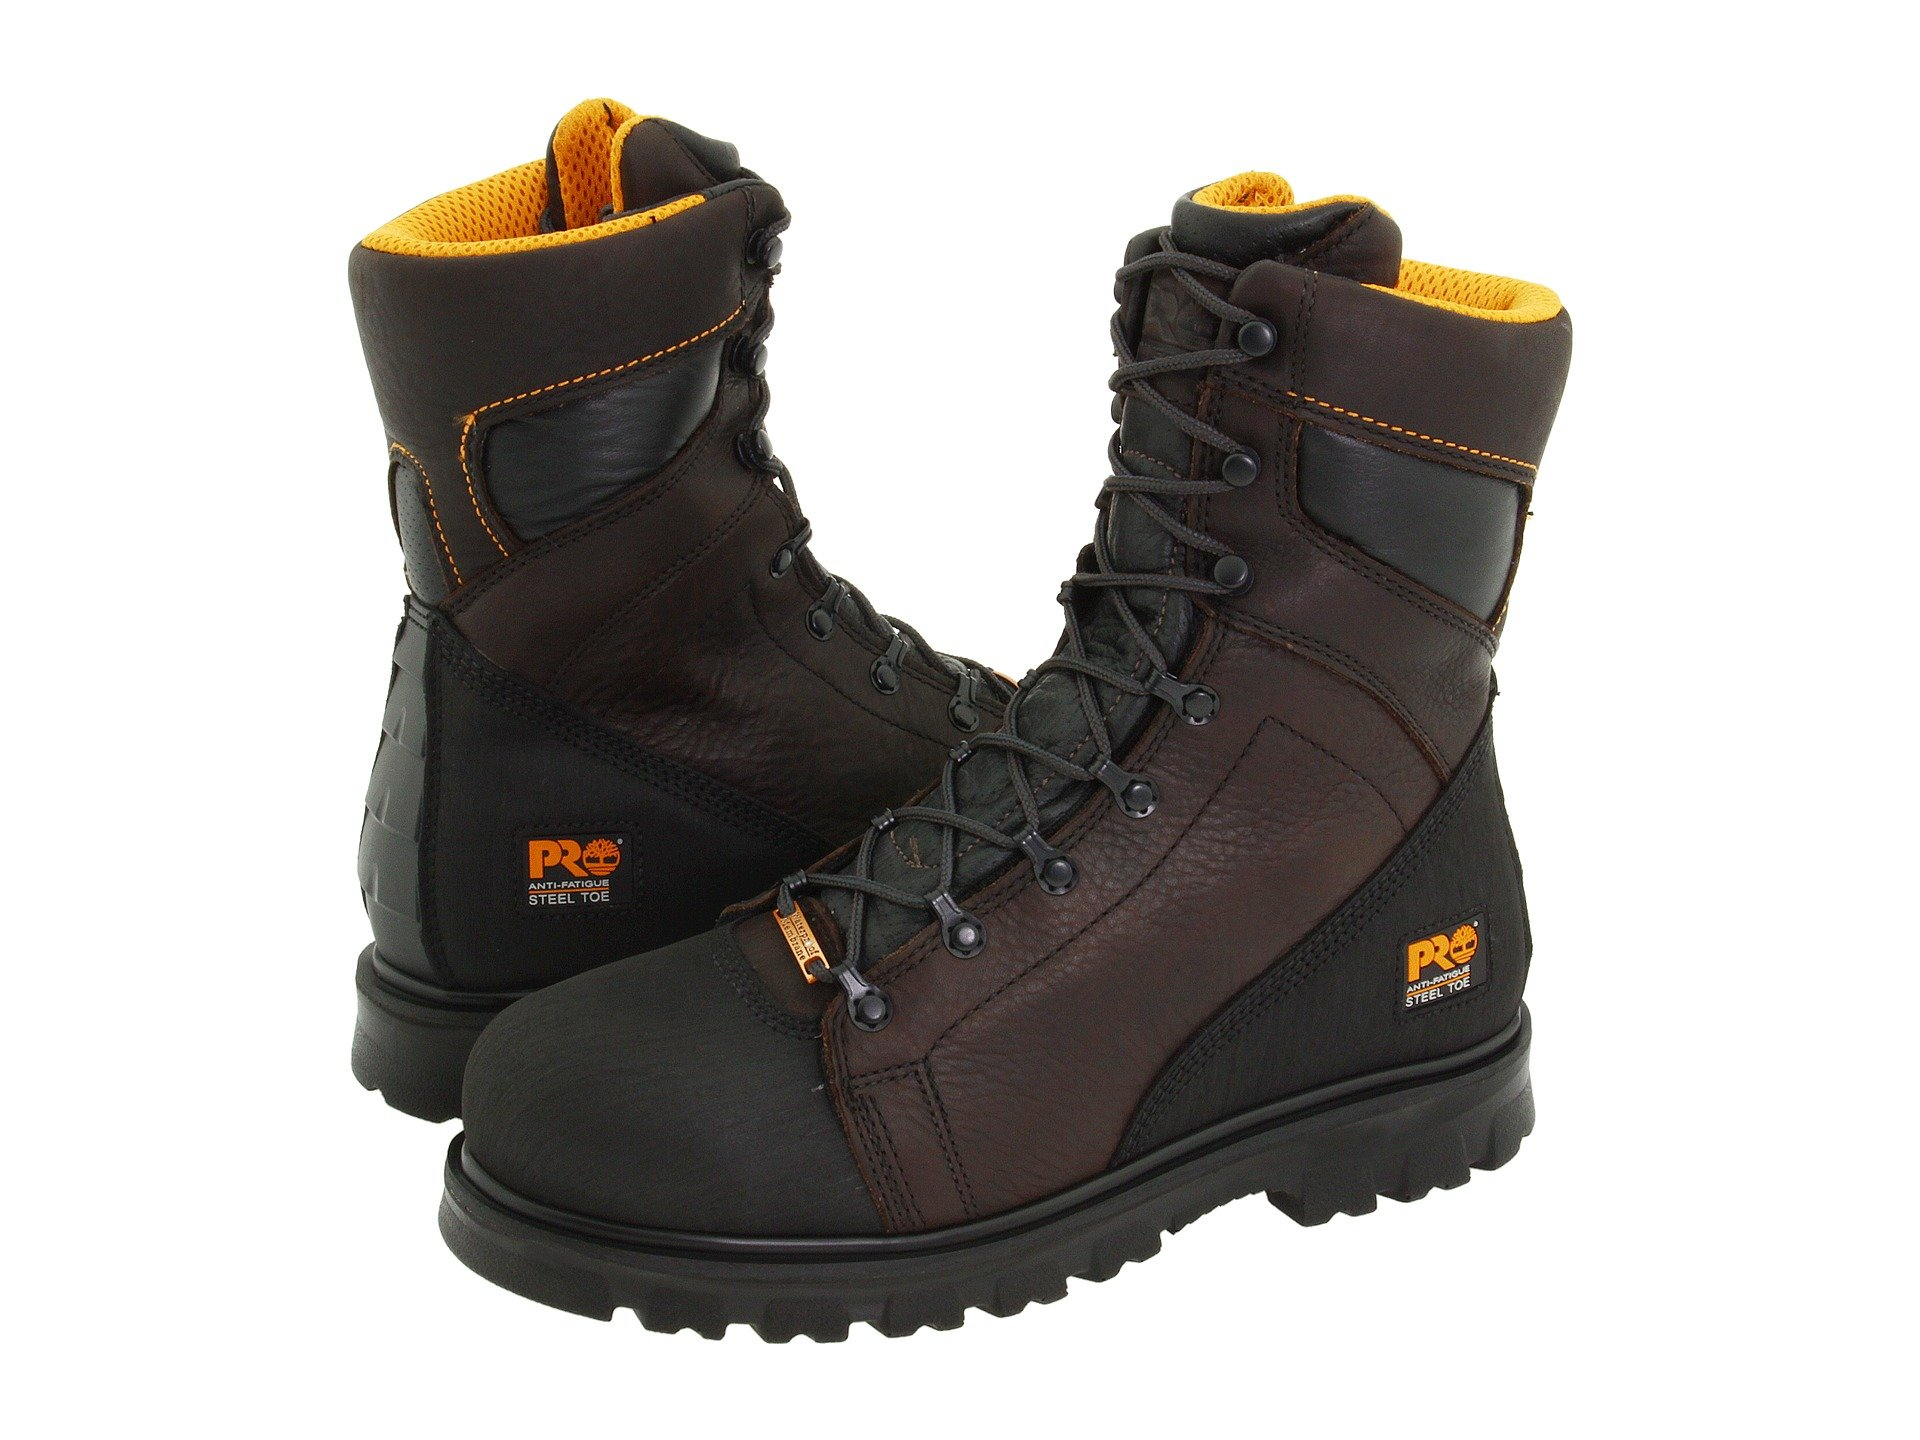 Timberland Pro Rigmaster 8 Quot Waterproof Steel Toe At Zappos Com